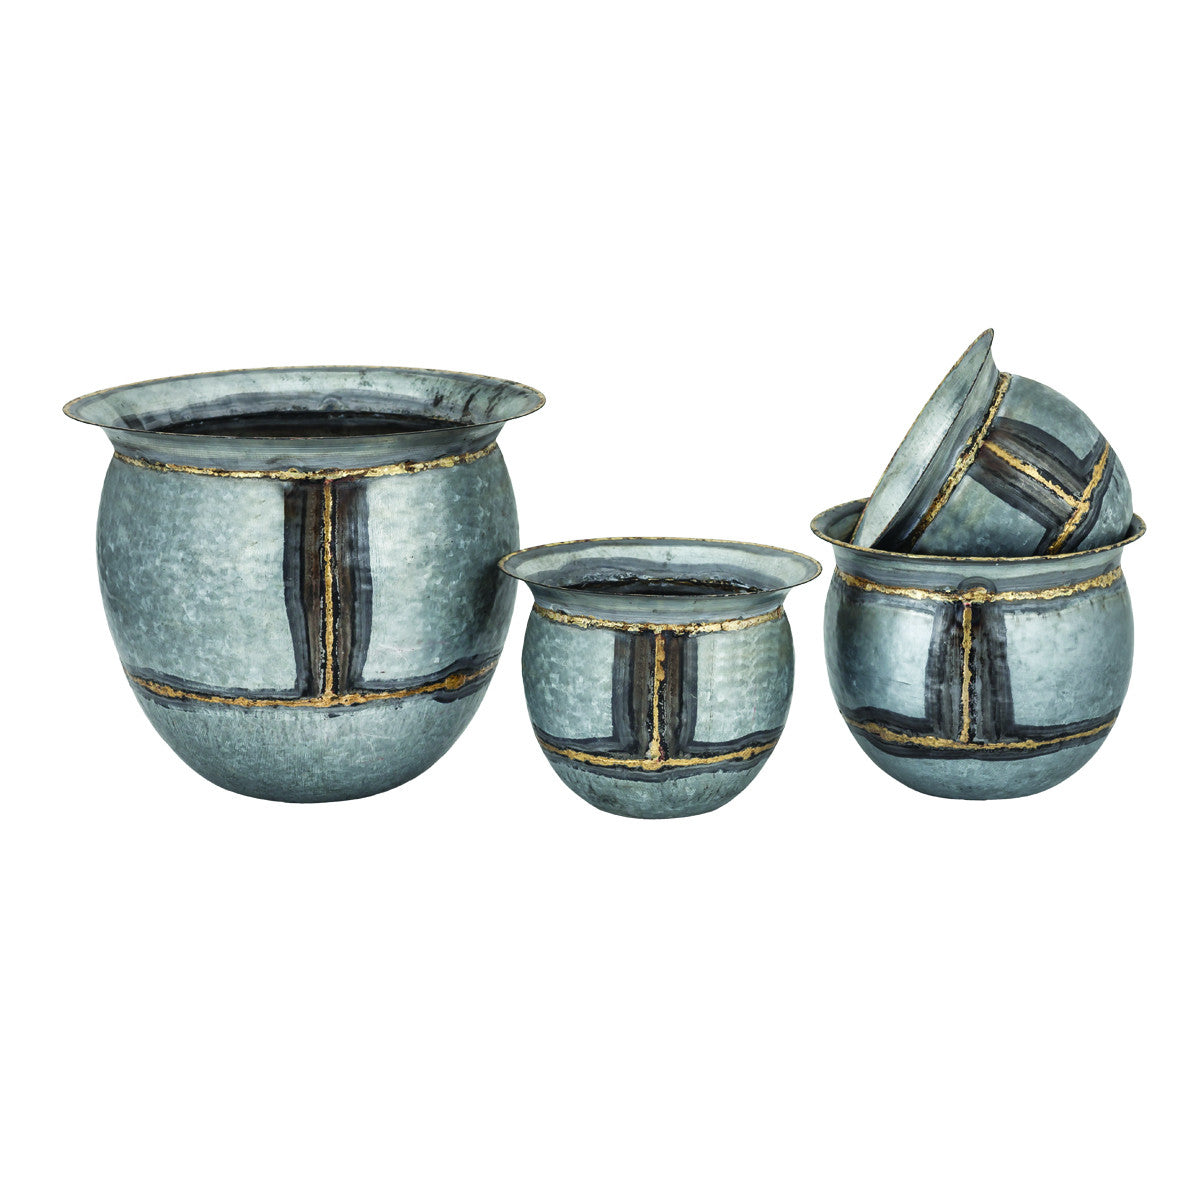 San Miguel Flared Top Planters, S/4